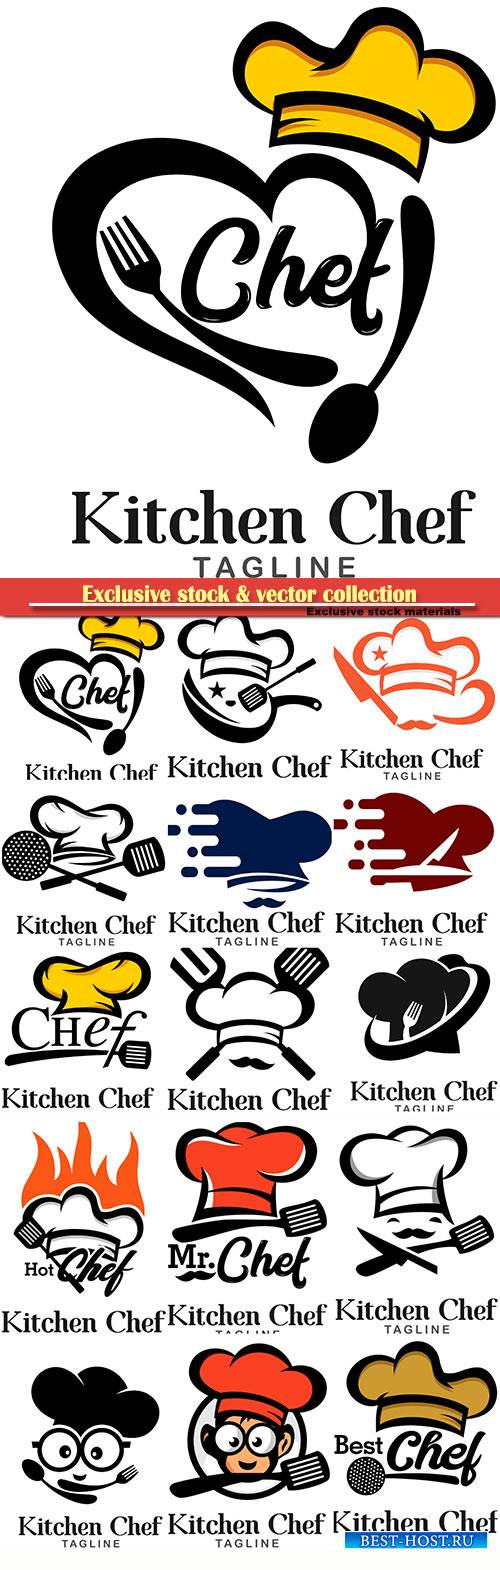 Kitchen chef logos in vector